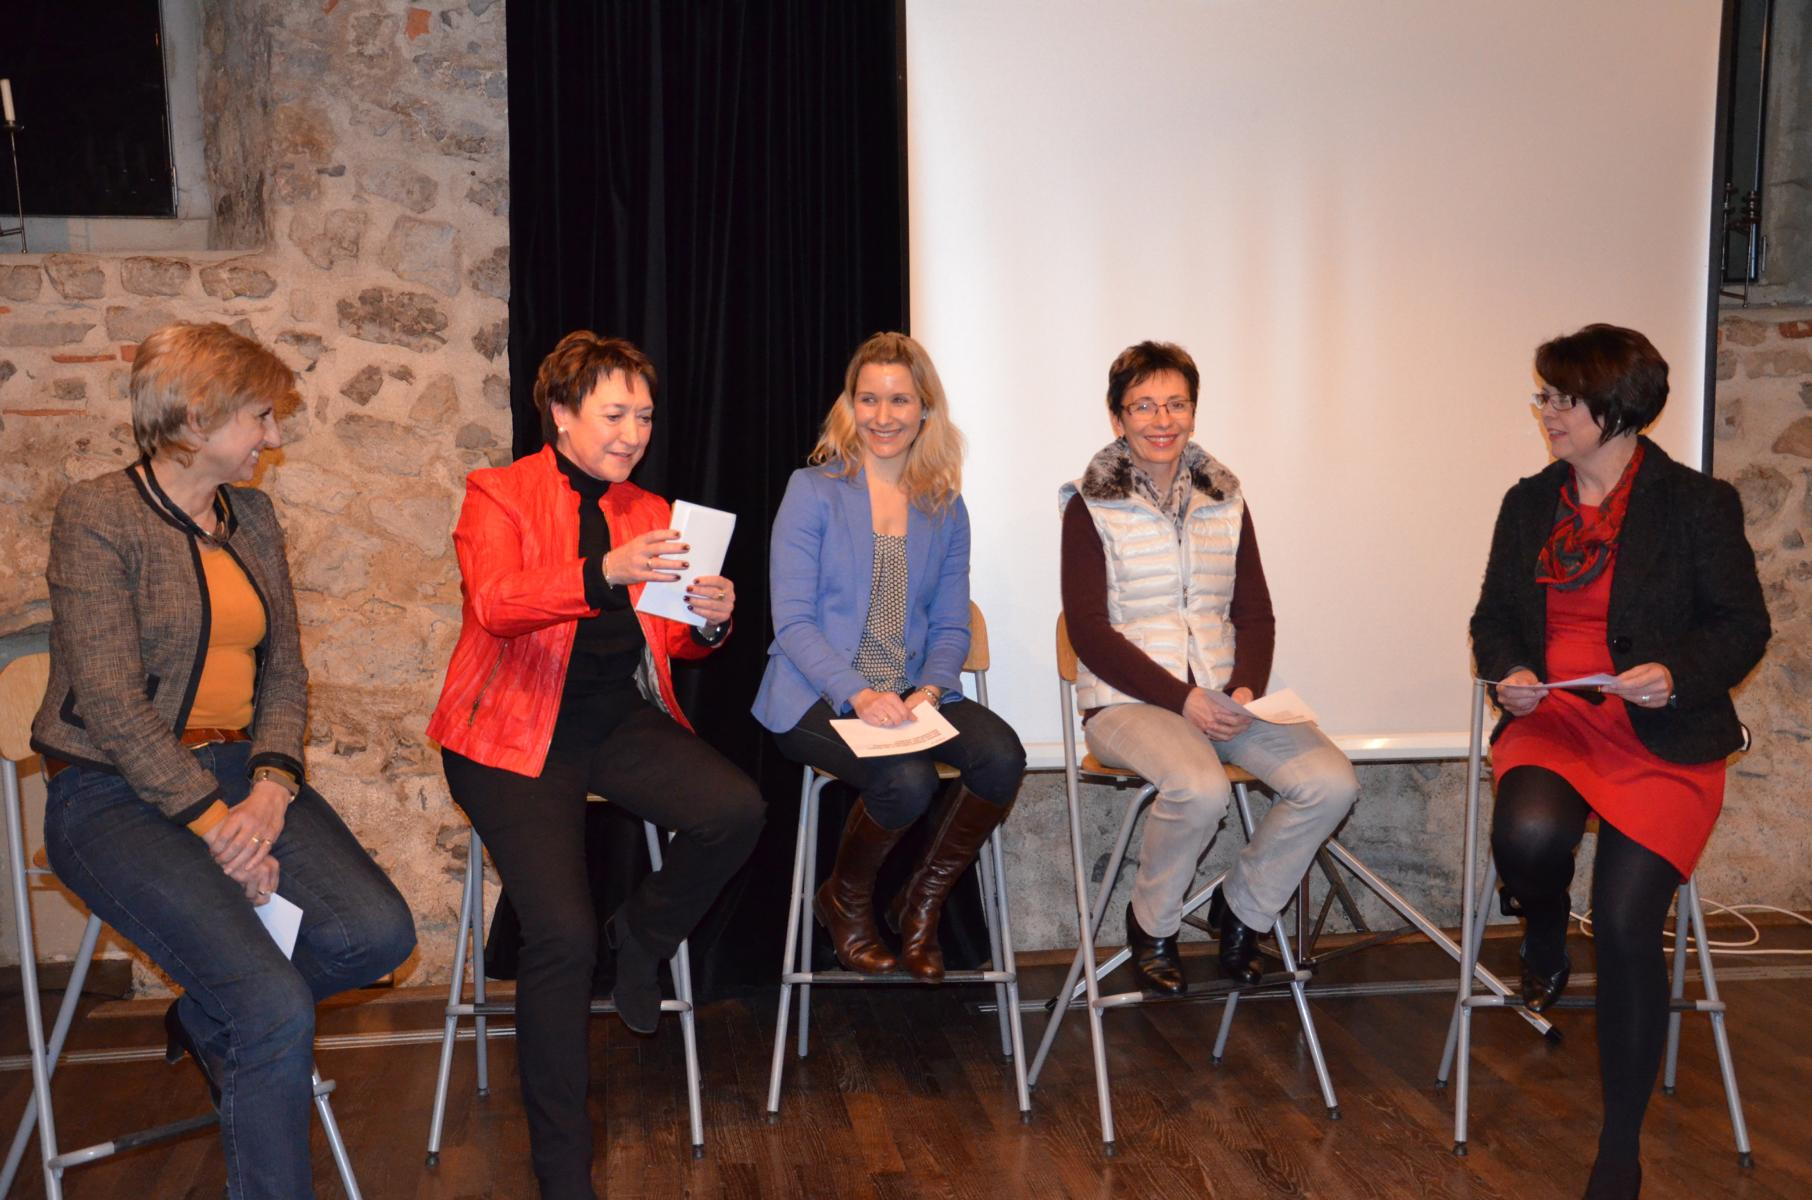 Podiumsdiskussion im Kloster in Horb